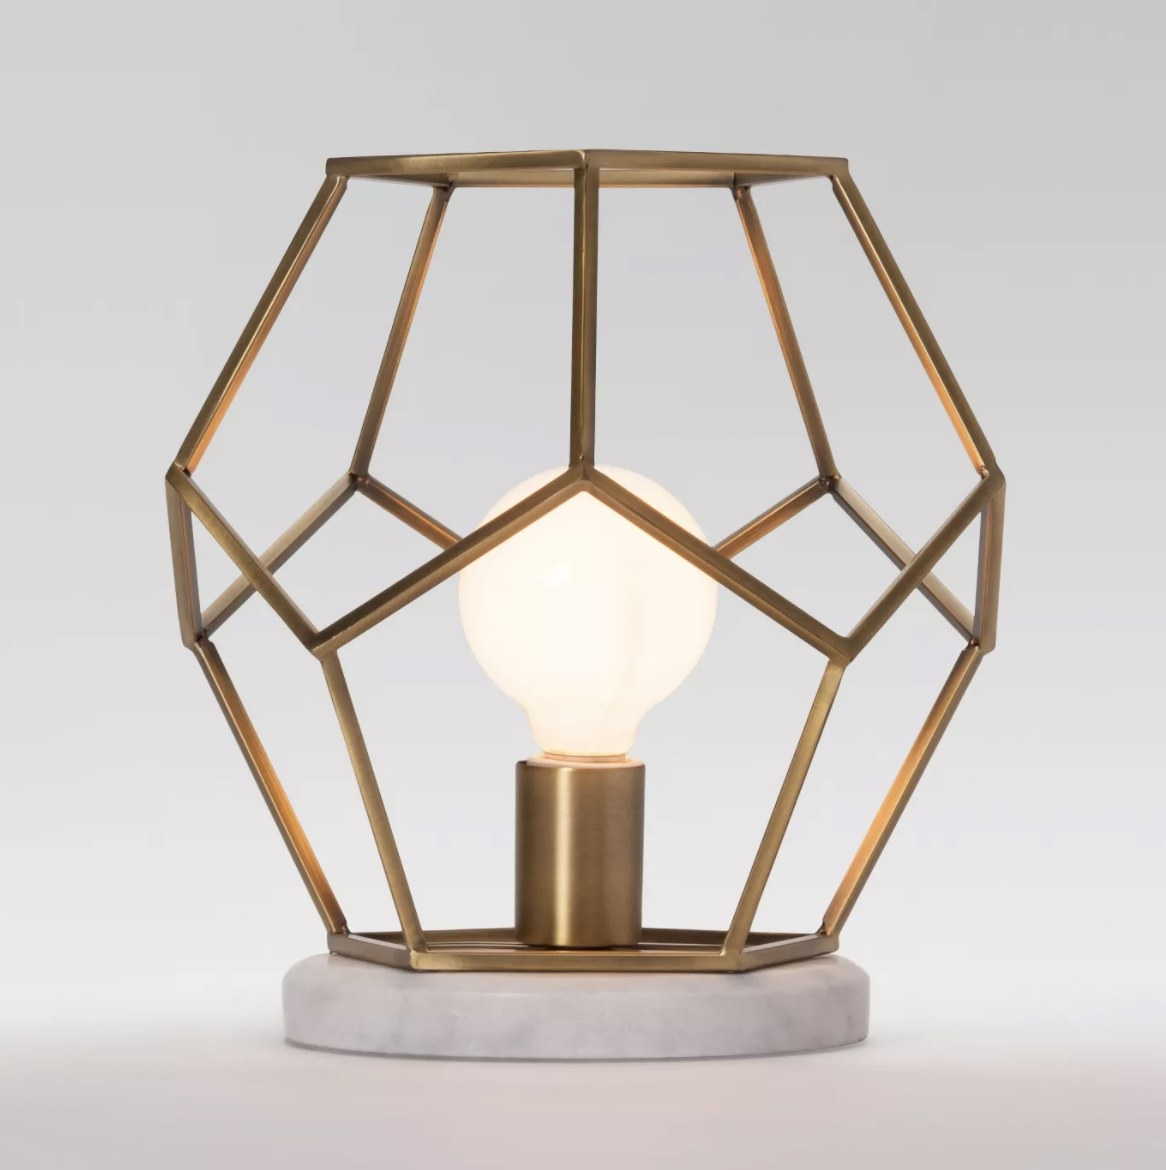 The lamp has a gold geometric outline frame and marble base